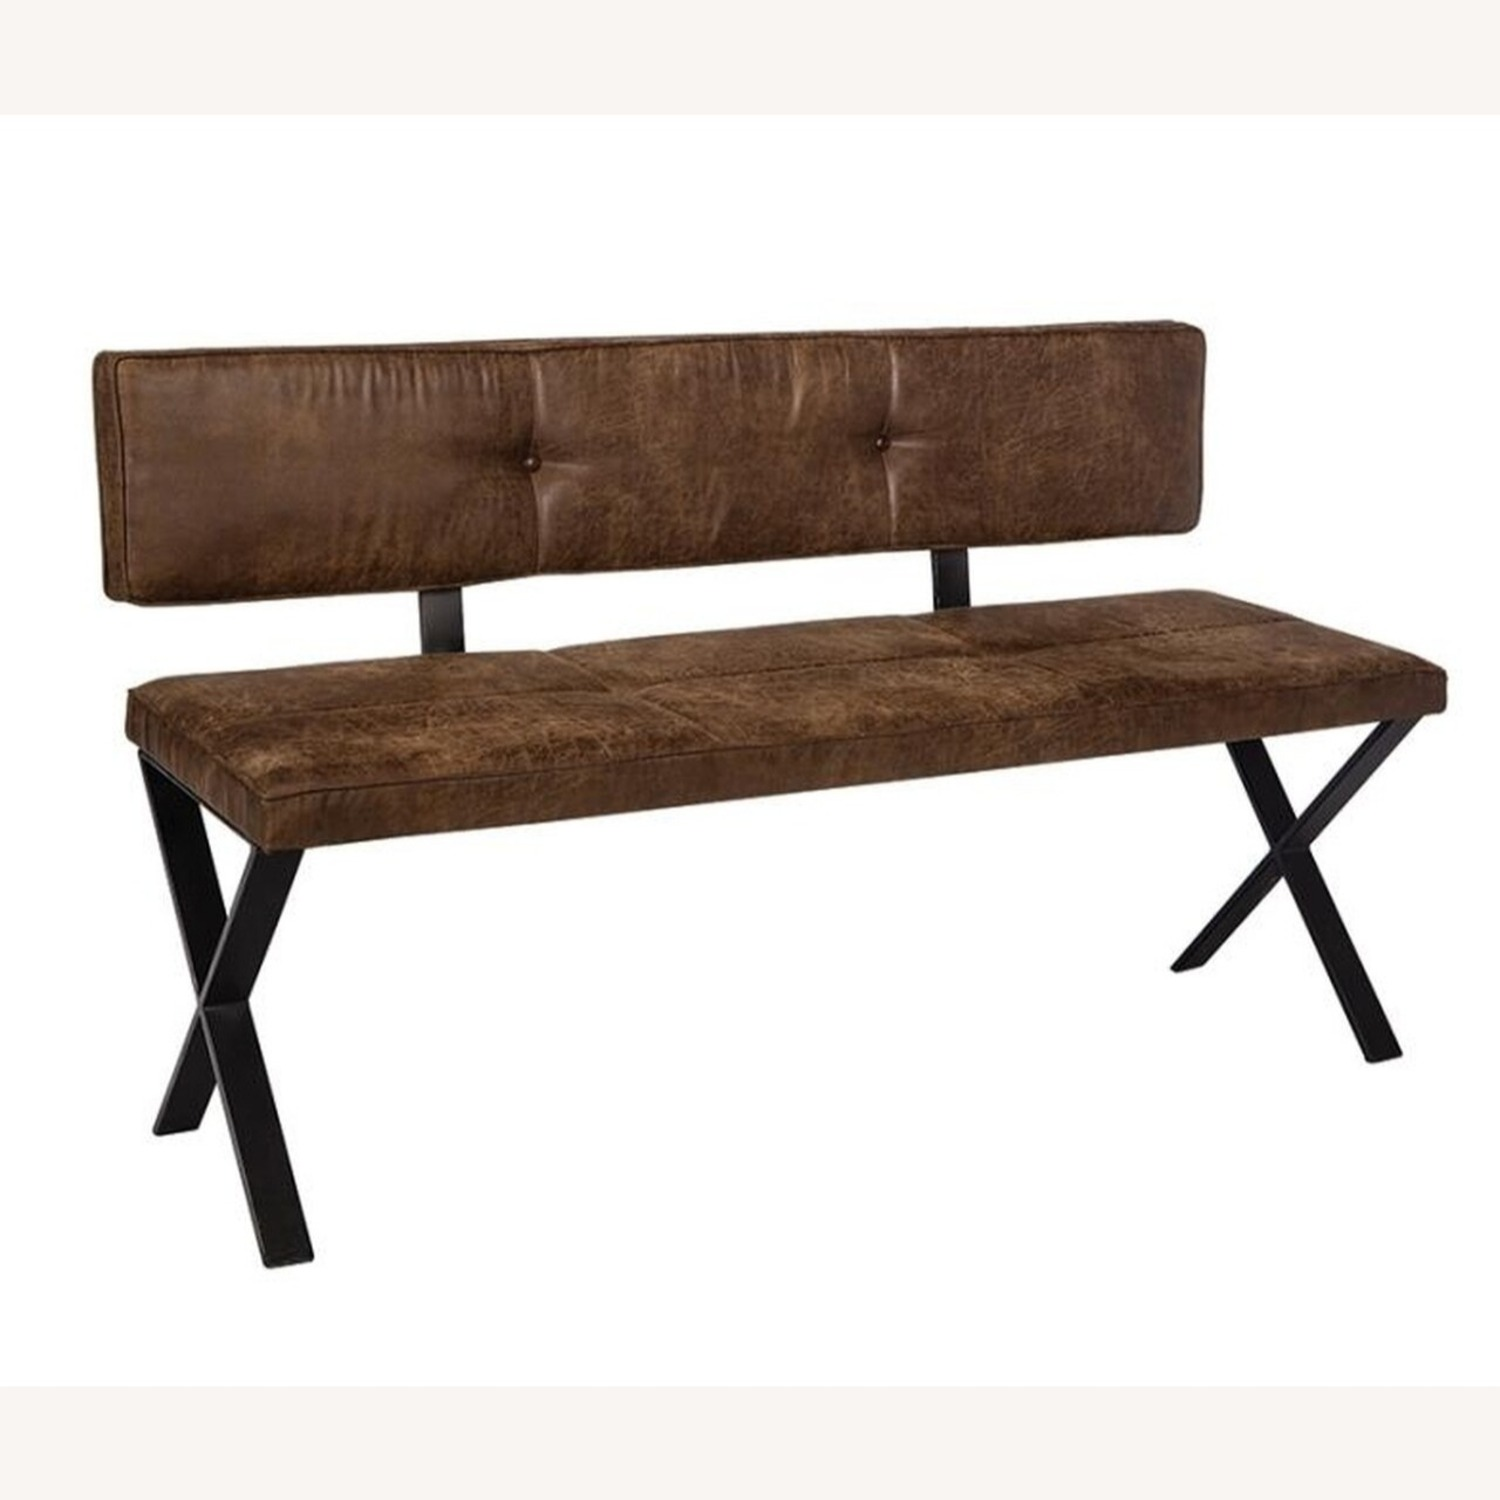 Casual-Looking Dining Bench in Antique Brown - image-0